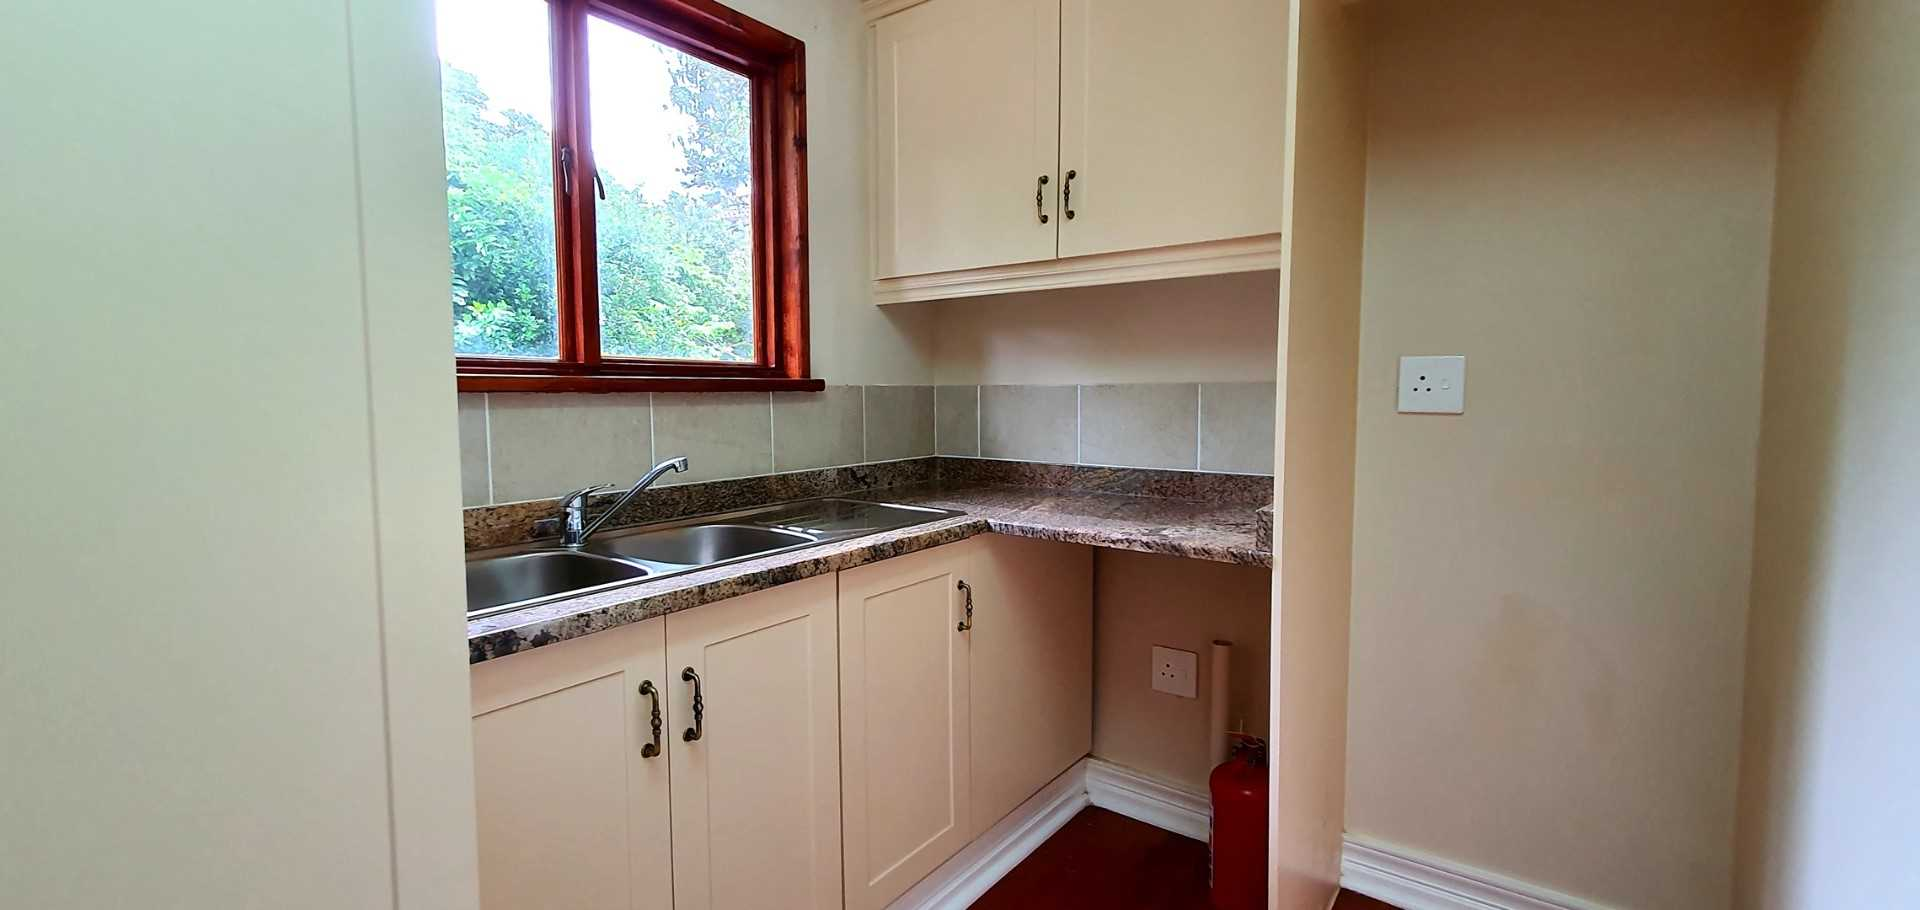 Scullery off the kitchen